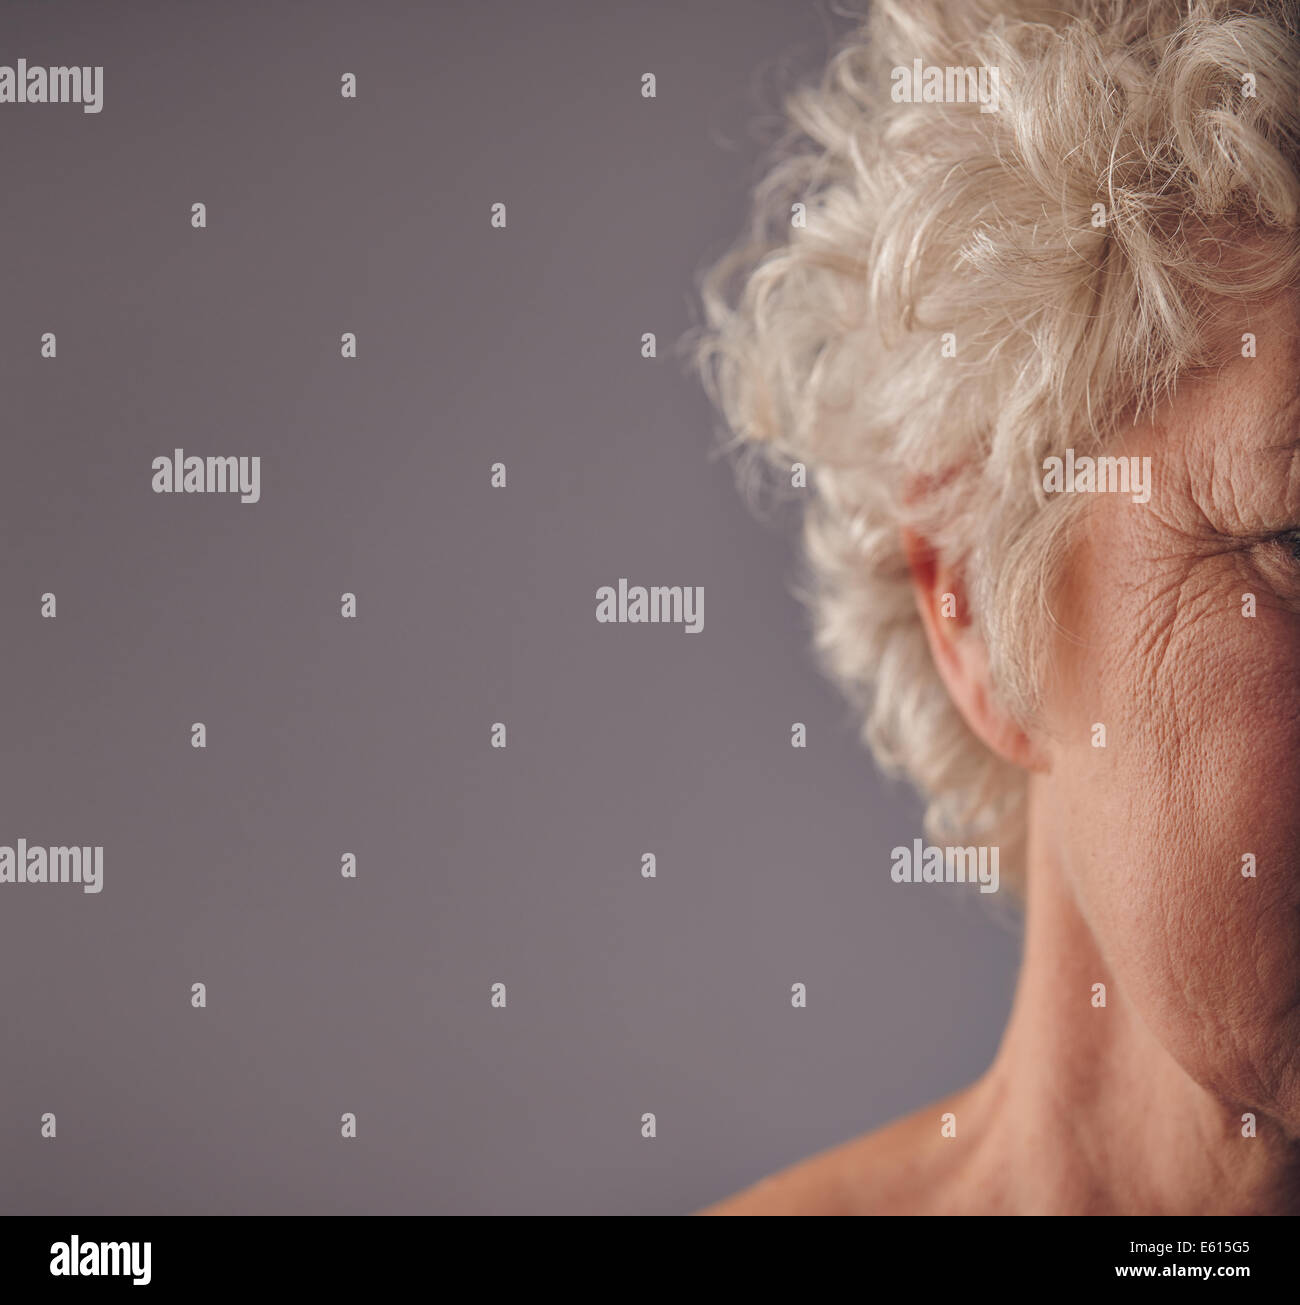 Cropped image of senior woman face with wrinkled skin on grey background. Crow feet on eyes of old woman. - Stock Image